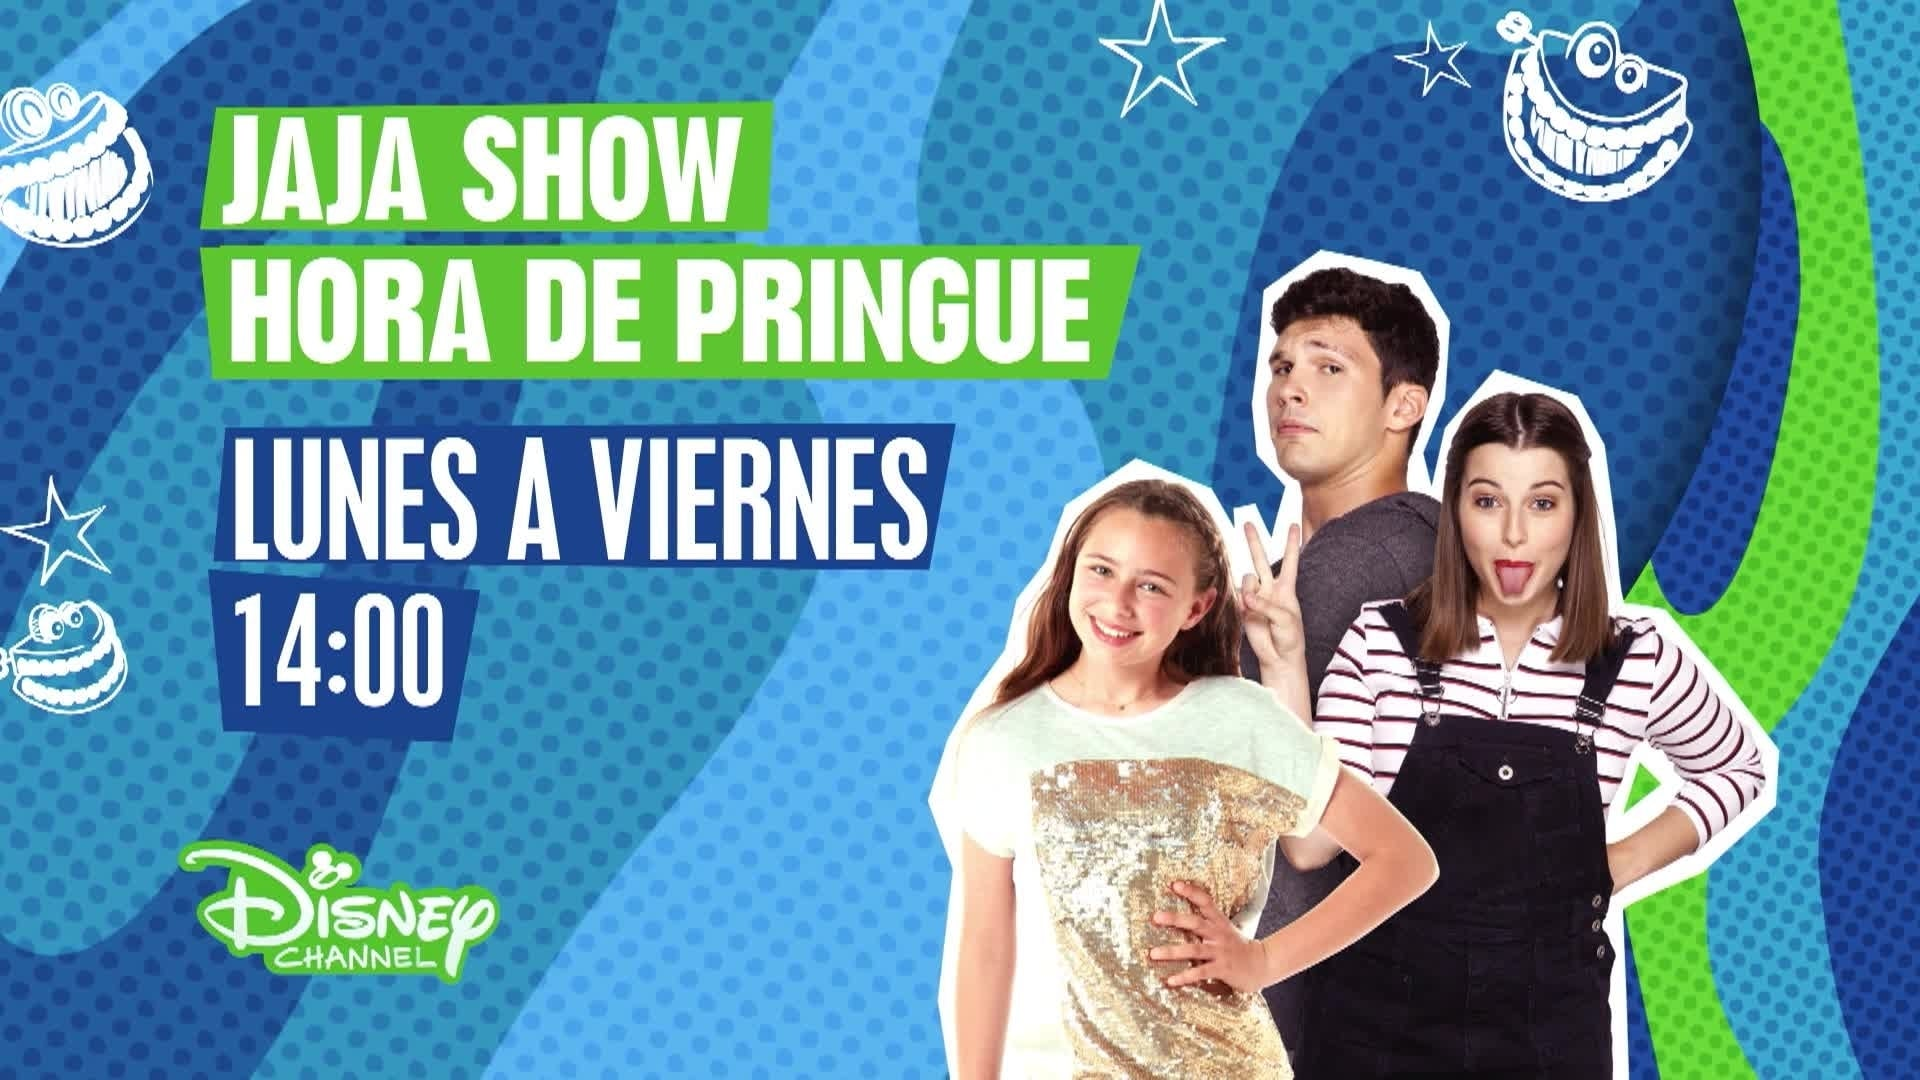 """JaJa Show Hora de pringue"" en Disney Channel"